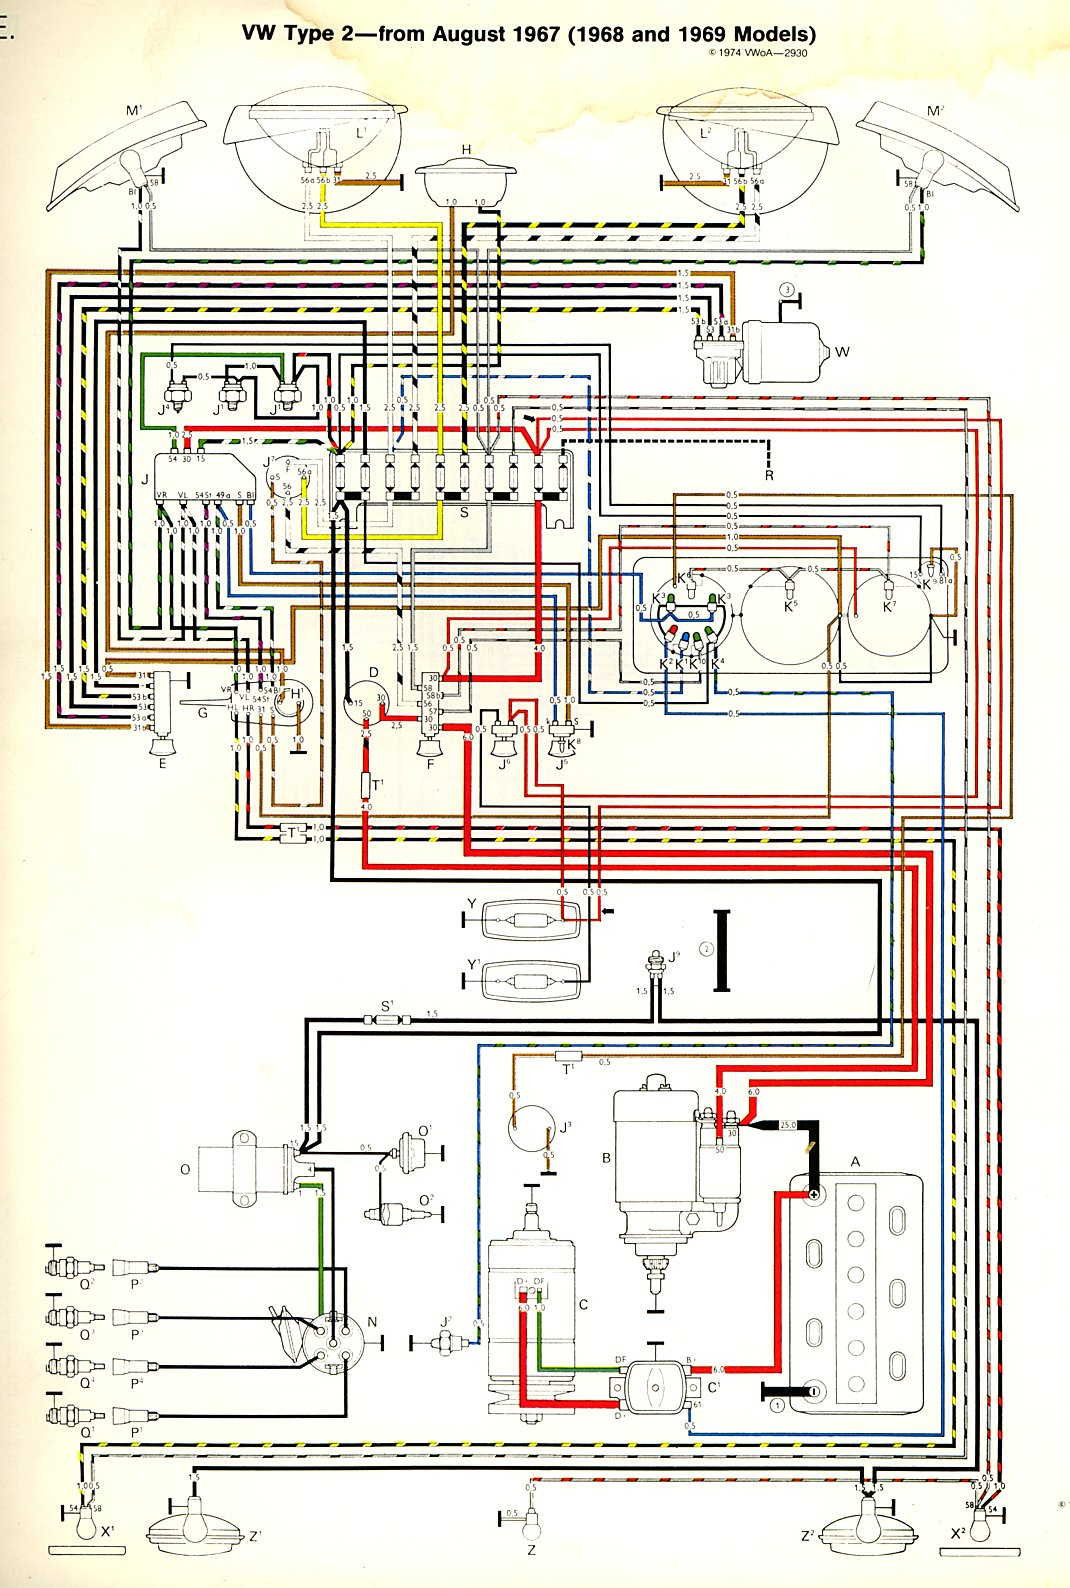 baybus_6869a bus wiring diagram vw wiring harness diagram \u2022 wiring diagrams j Volkswagen Type 2 Wiring Harness at mifinder.co